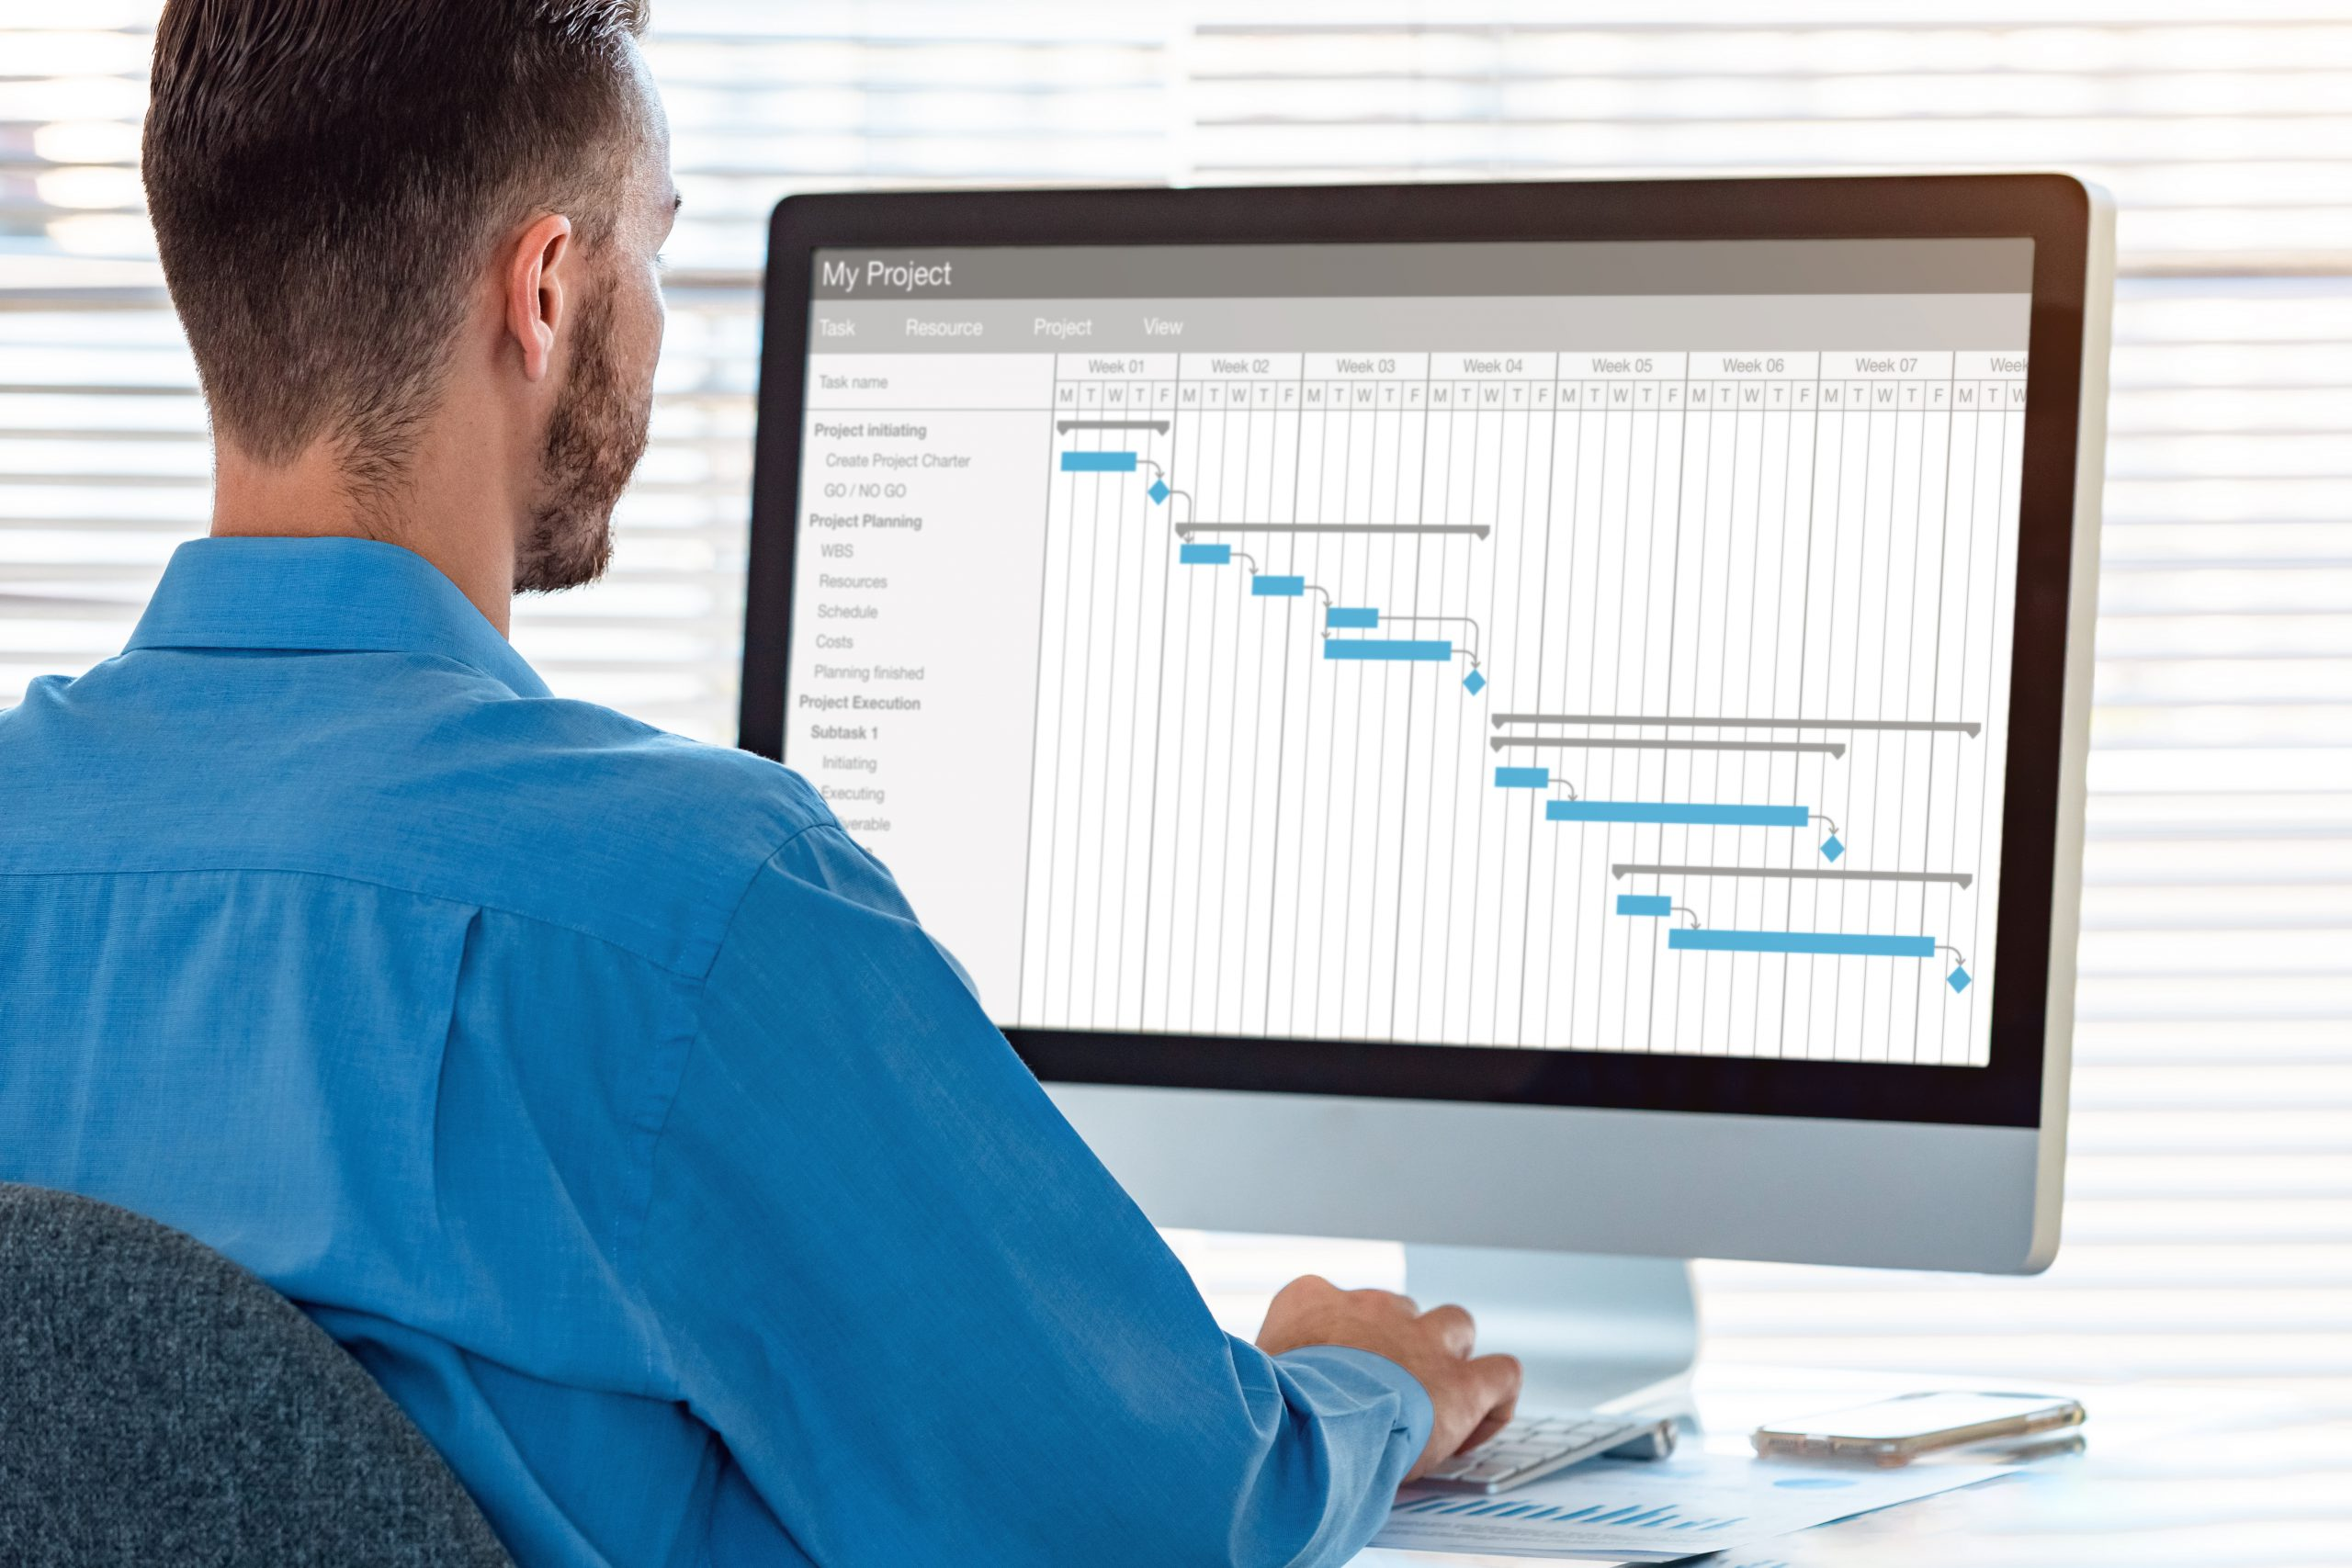 projectplanning software